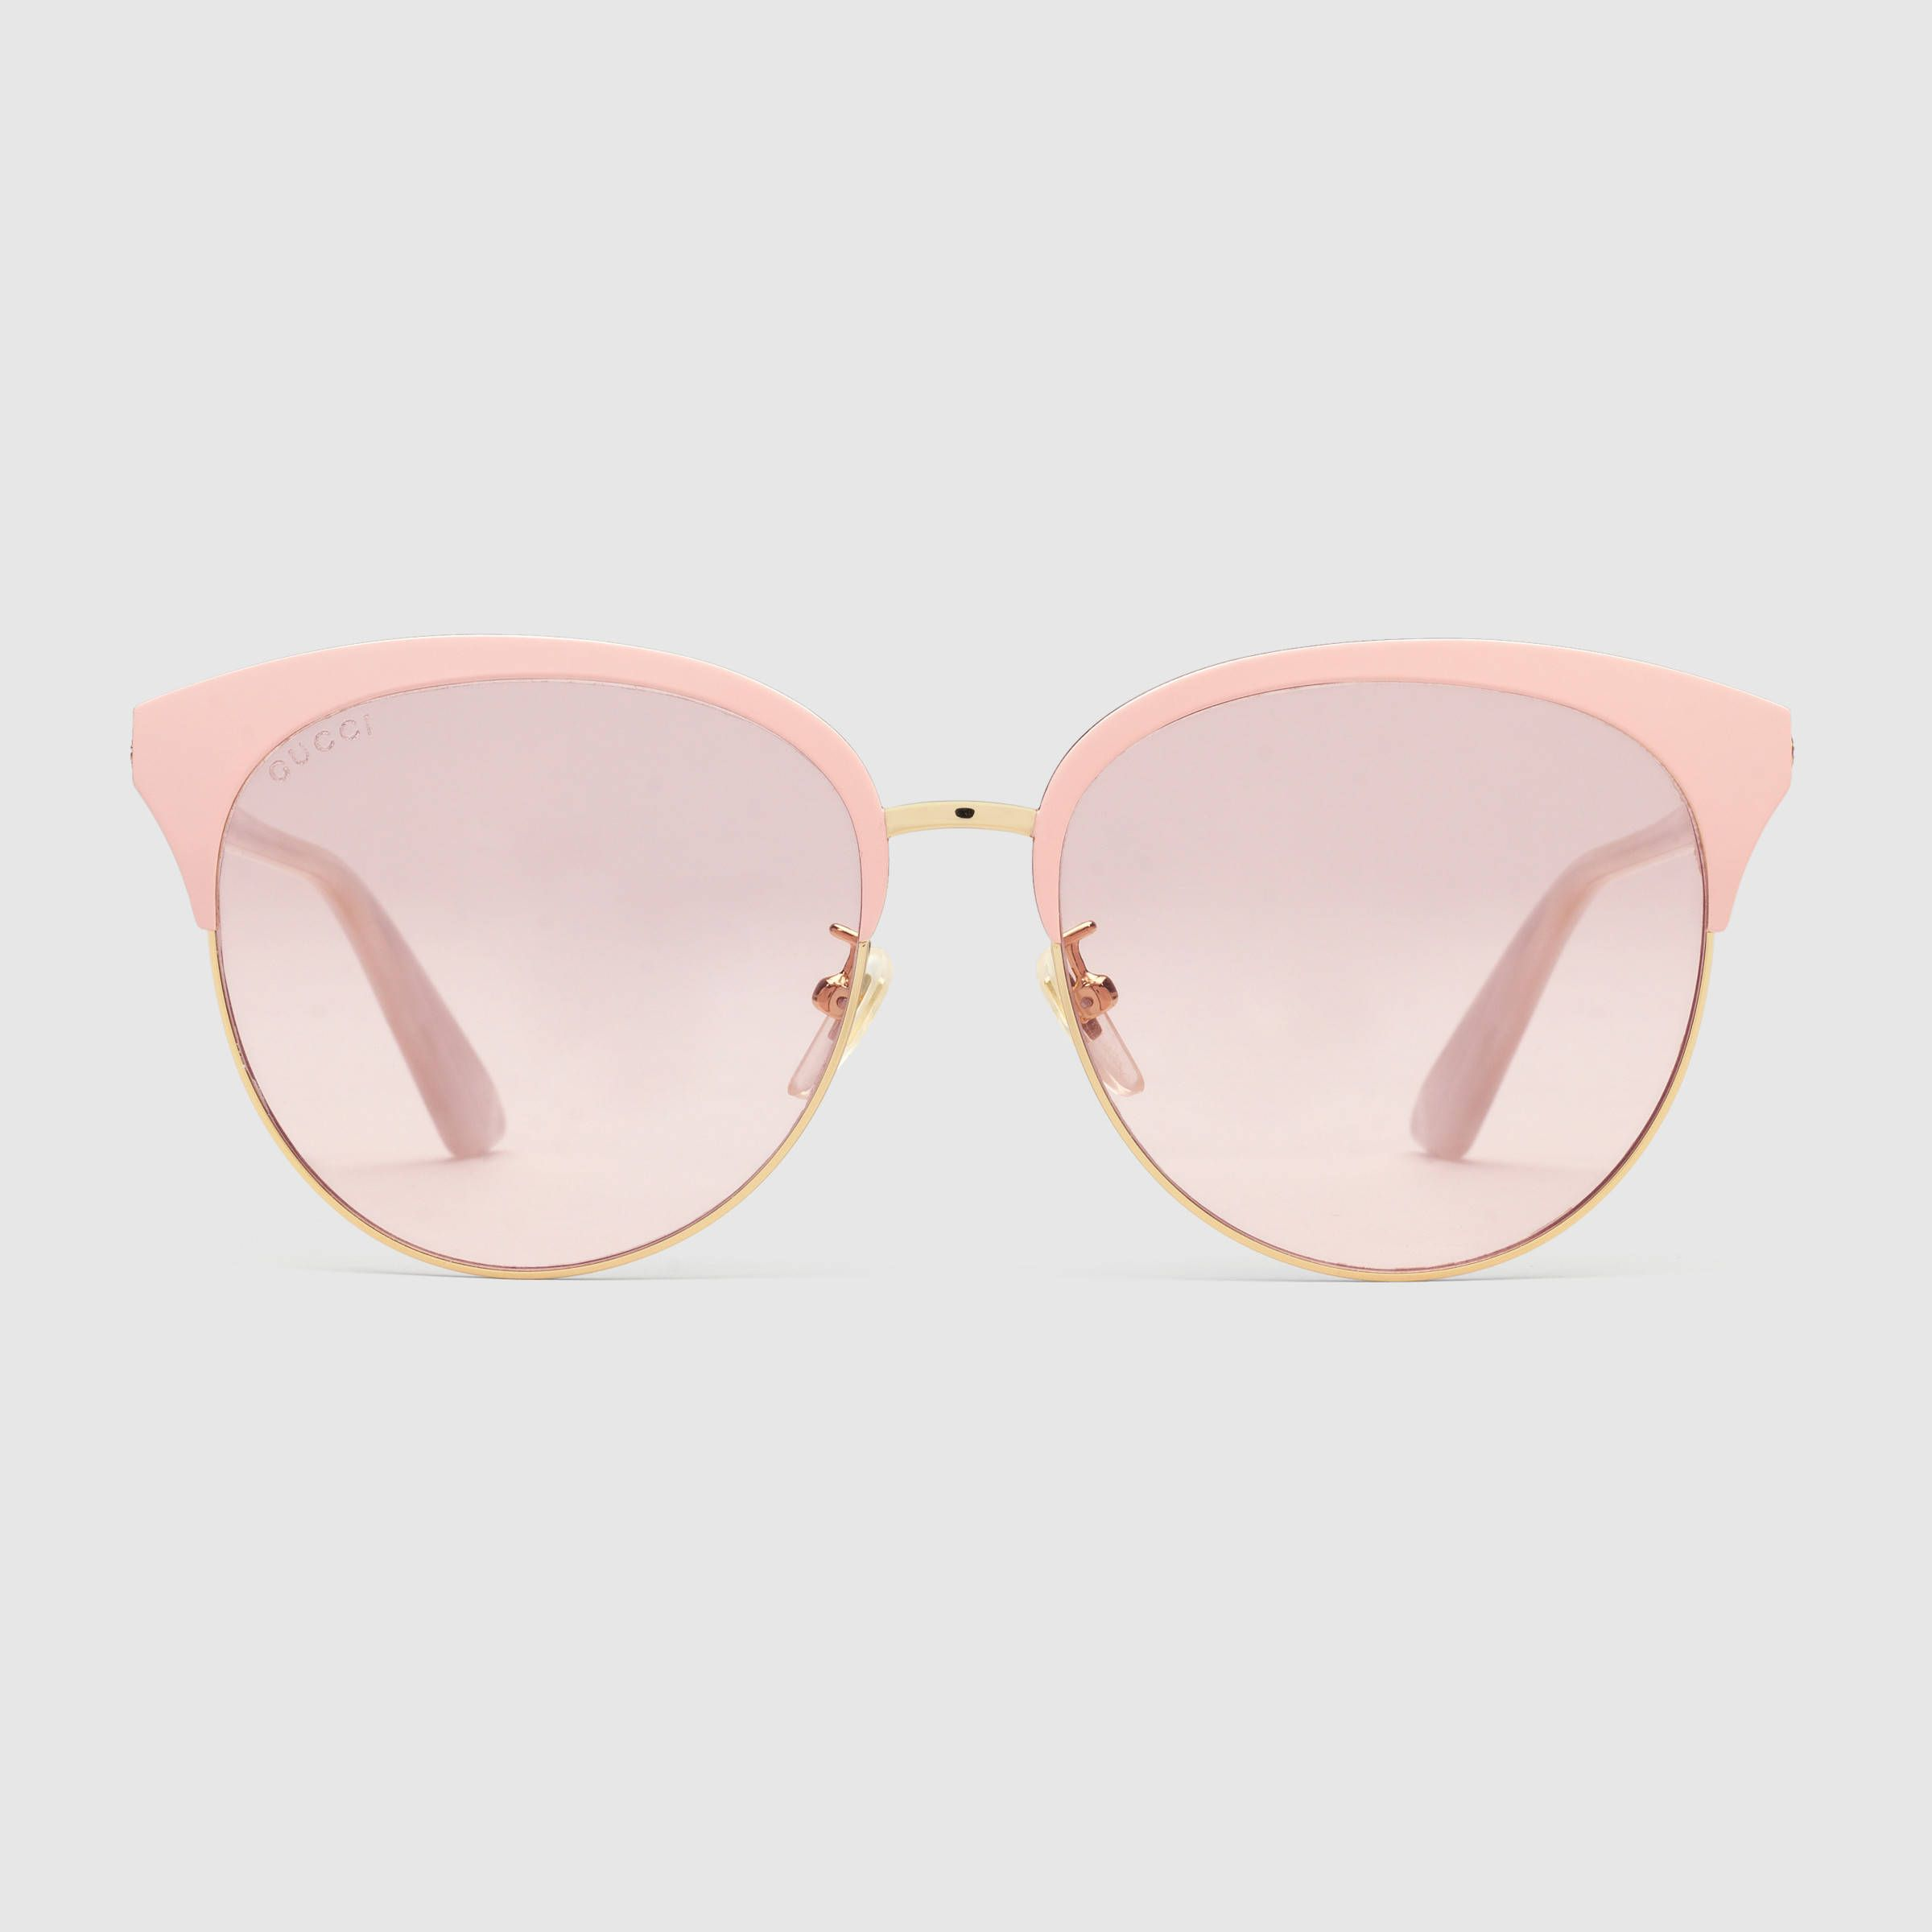 ac1465bf8 Specialized fit round-frame metal sunglasses - Gucci Women's Sunglasses  504319I03308805